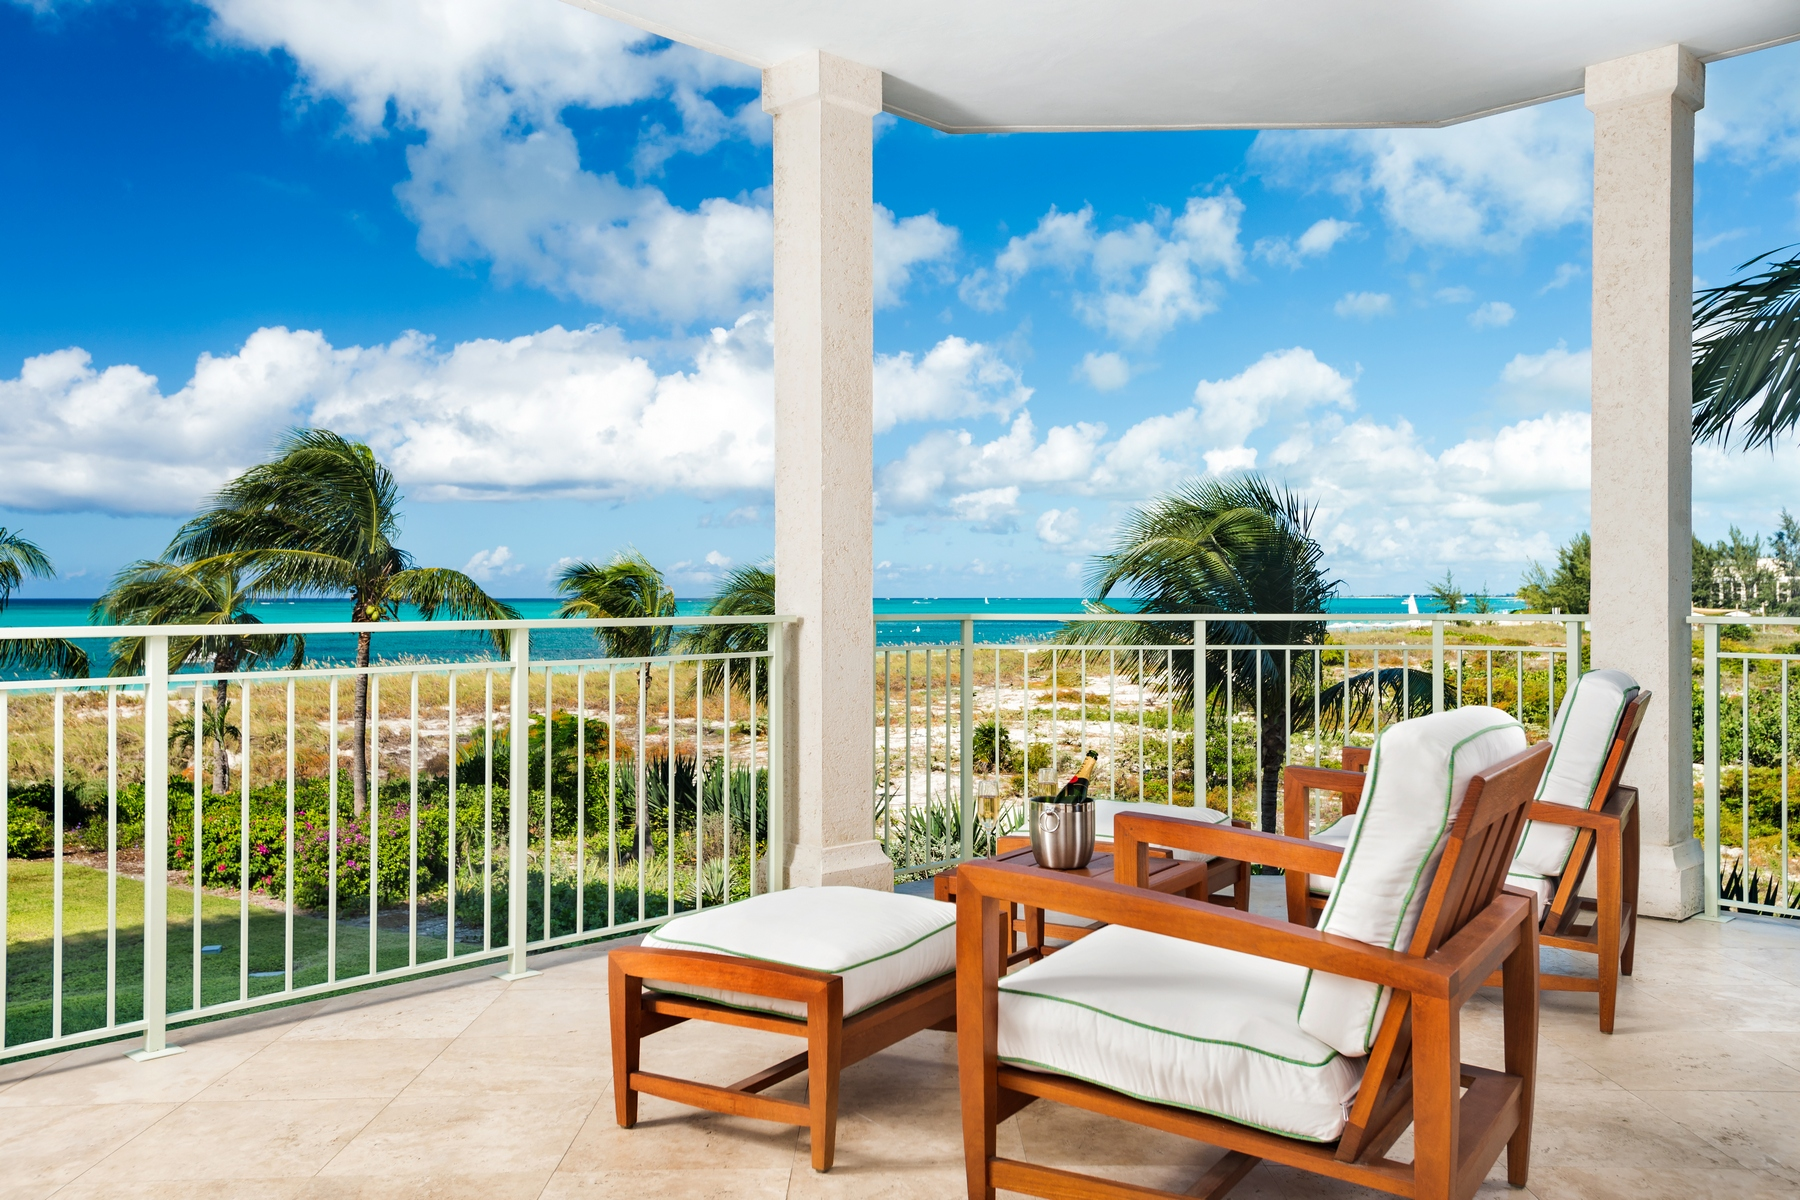 Condominium for Sale at West Bay Club - Suite 209 West Bay Club, Grace Bay, Providenciales Turks And Caicos Islands